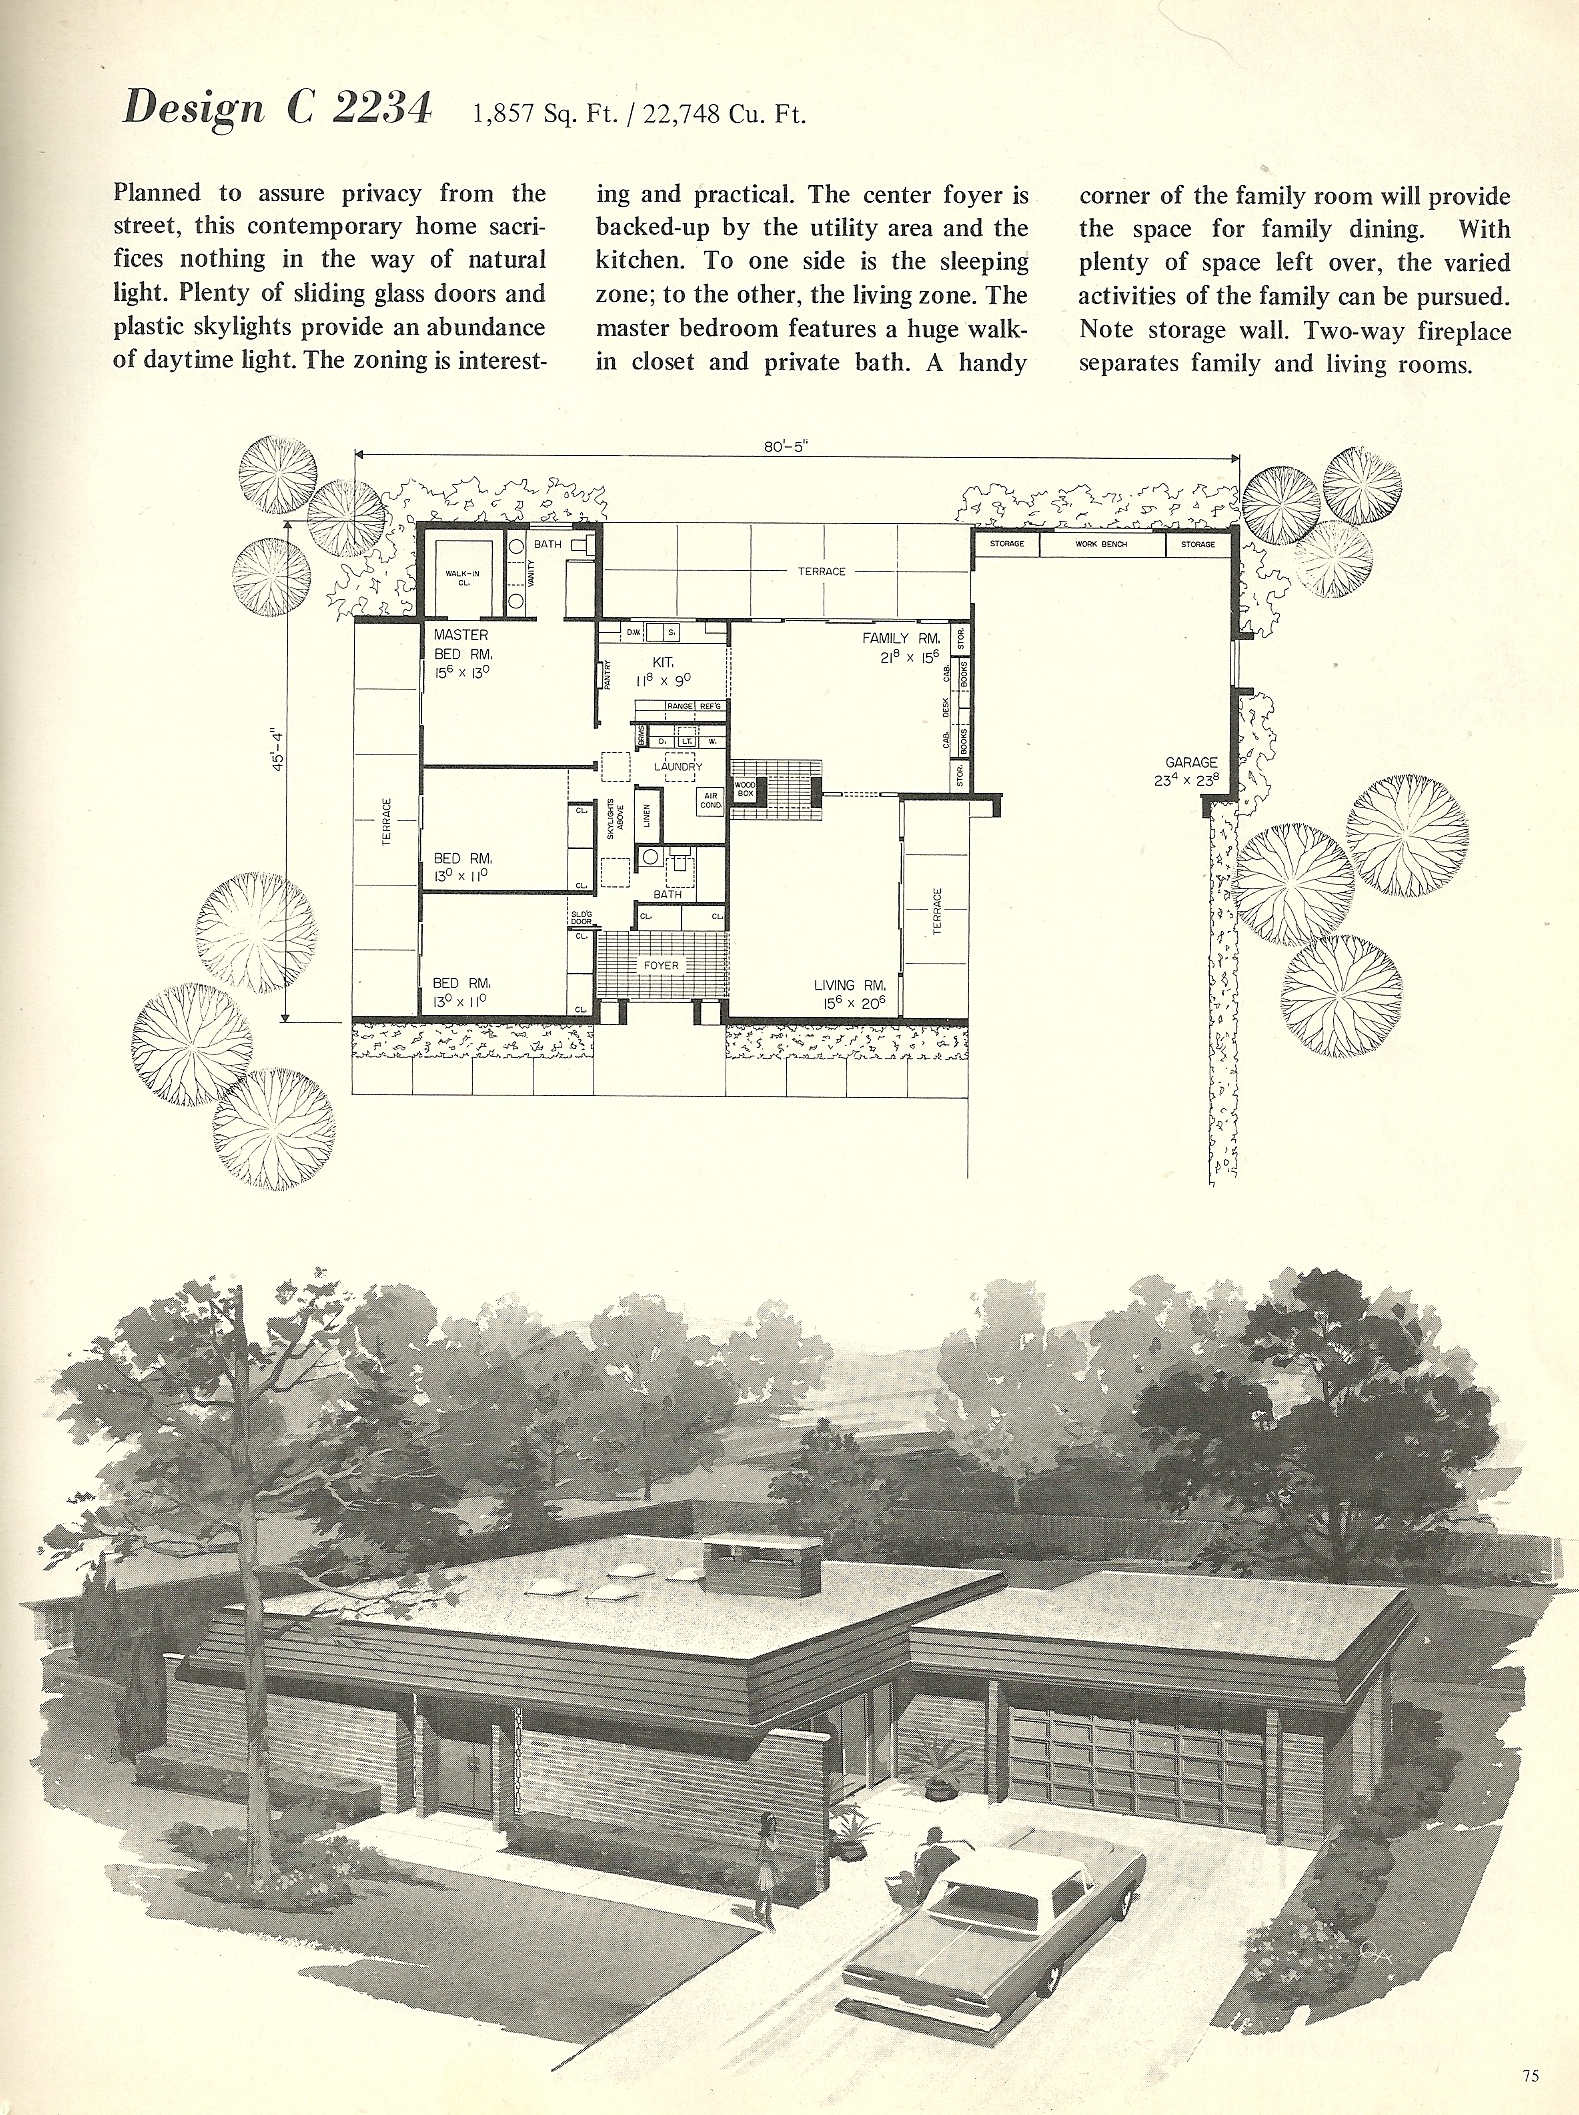 Vintage house plans 2234 antique alter ego for Mid century modern home floor plans